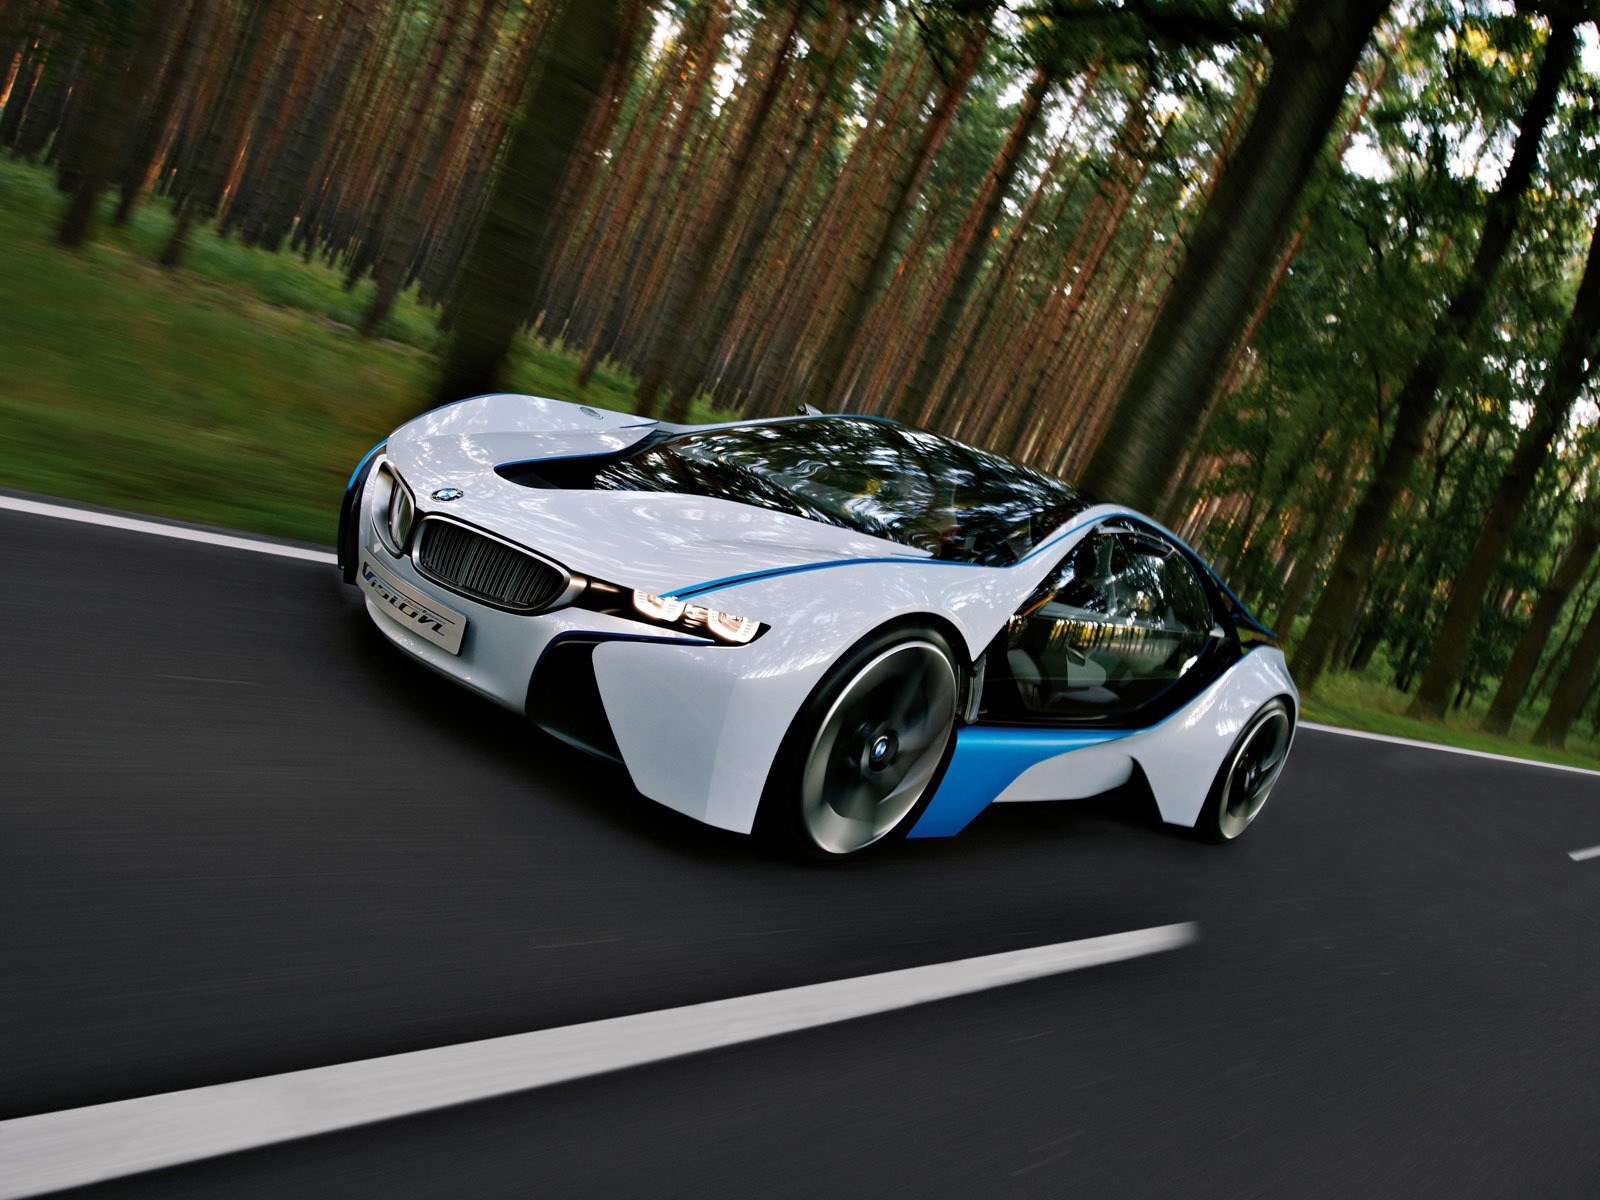 bmw vision wallpaper bmw cars wallpapers in jpg format for free download